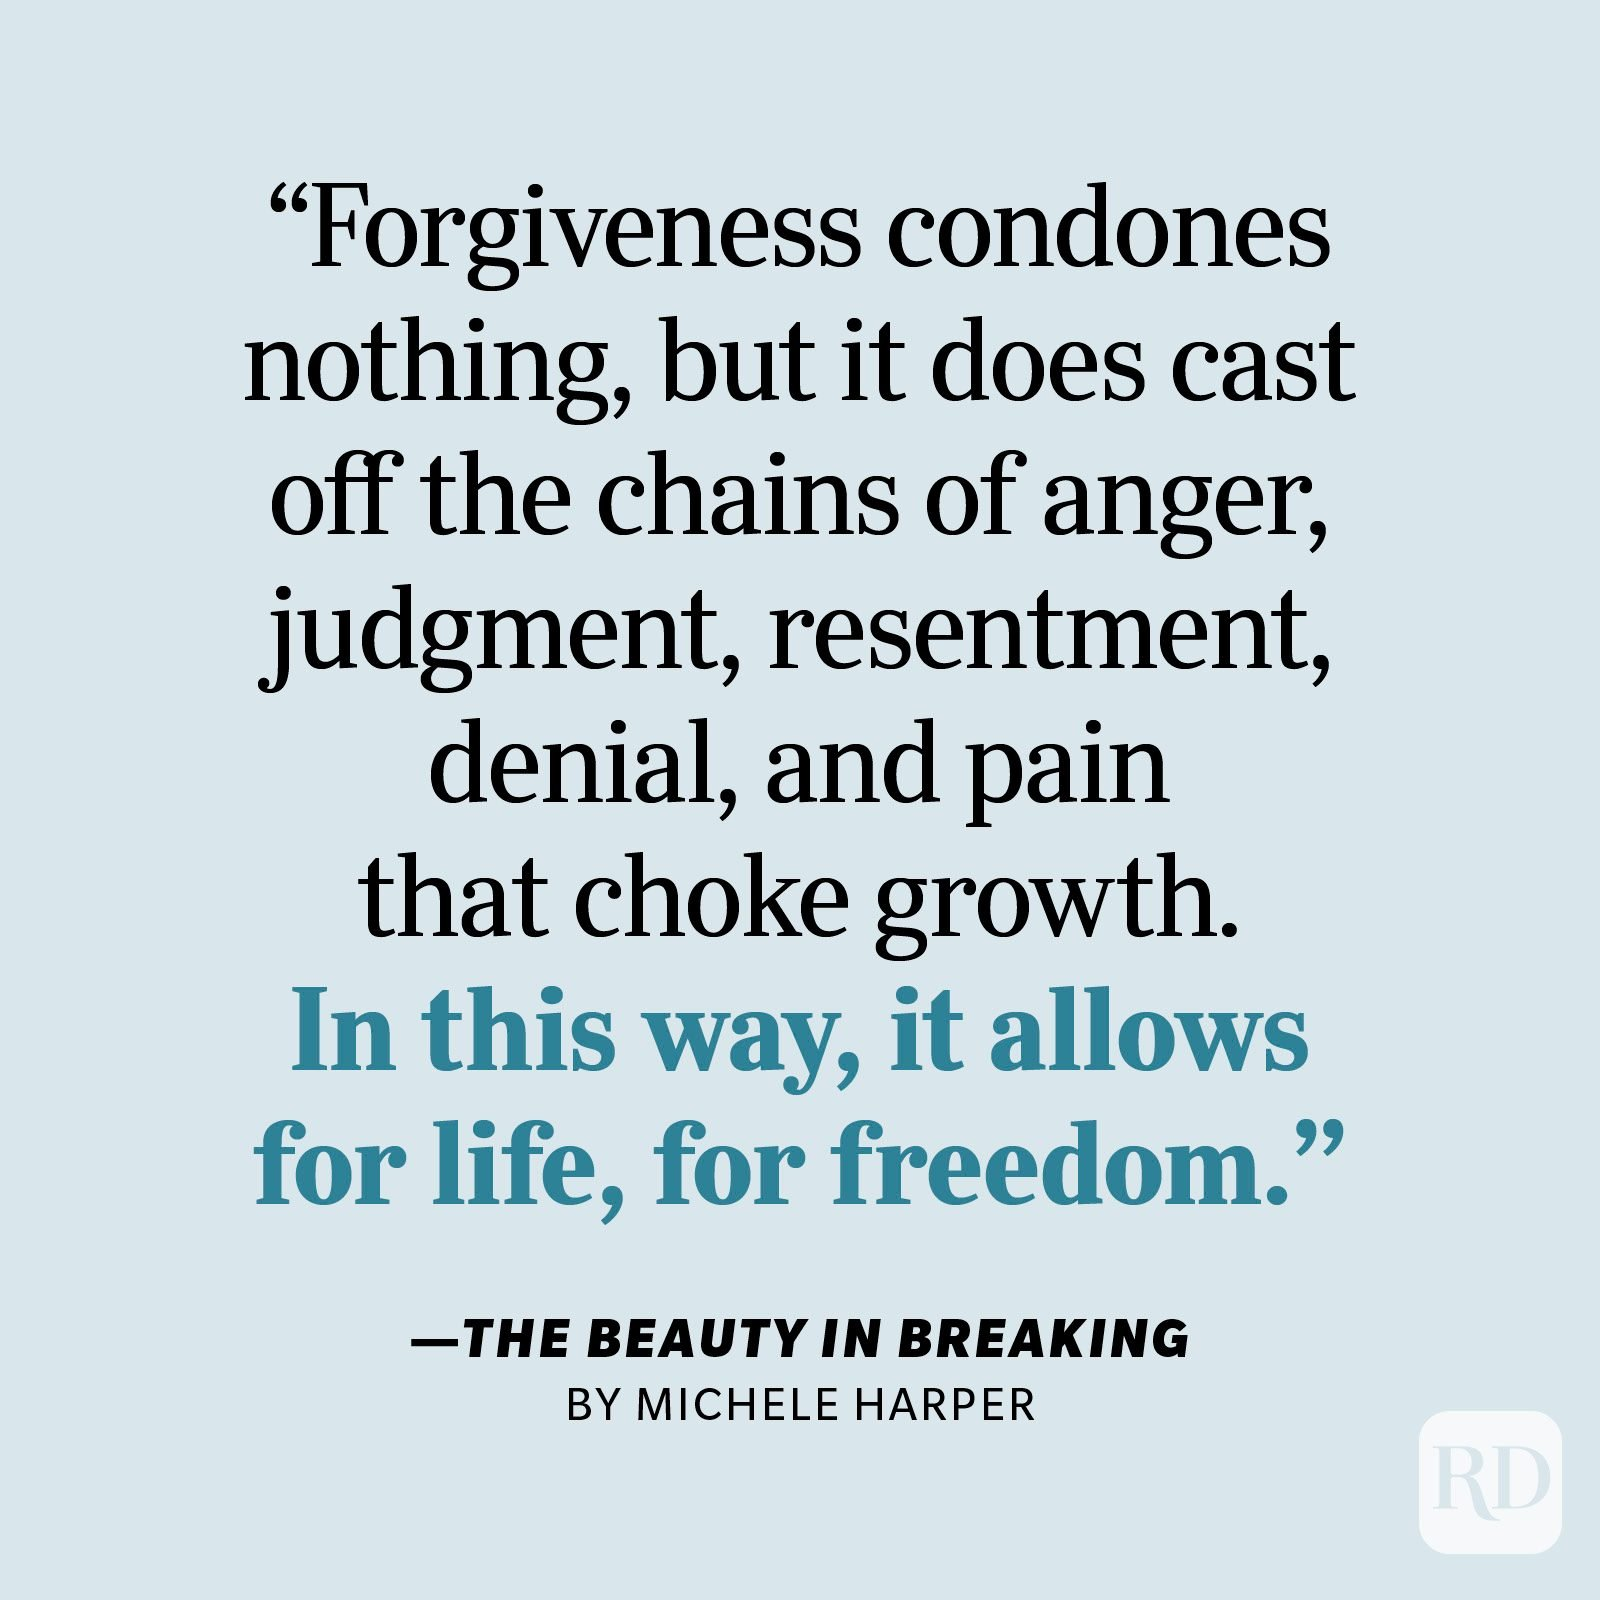 """The Beauty in Breaking by Michele Harper     """"Forgiveness condones nothing, but it does cast off the chains of anger, judgment, resentment, denial, and pain that choke growth. In this way, it allows for life, for freedom. So that's what's at stake when it comes to forgiveness: freedom. With this freedom, we can feel better, be better, and choose better next time."""""""